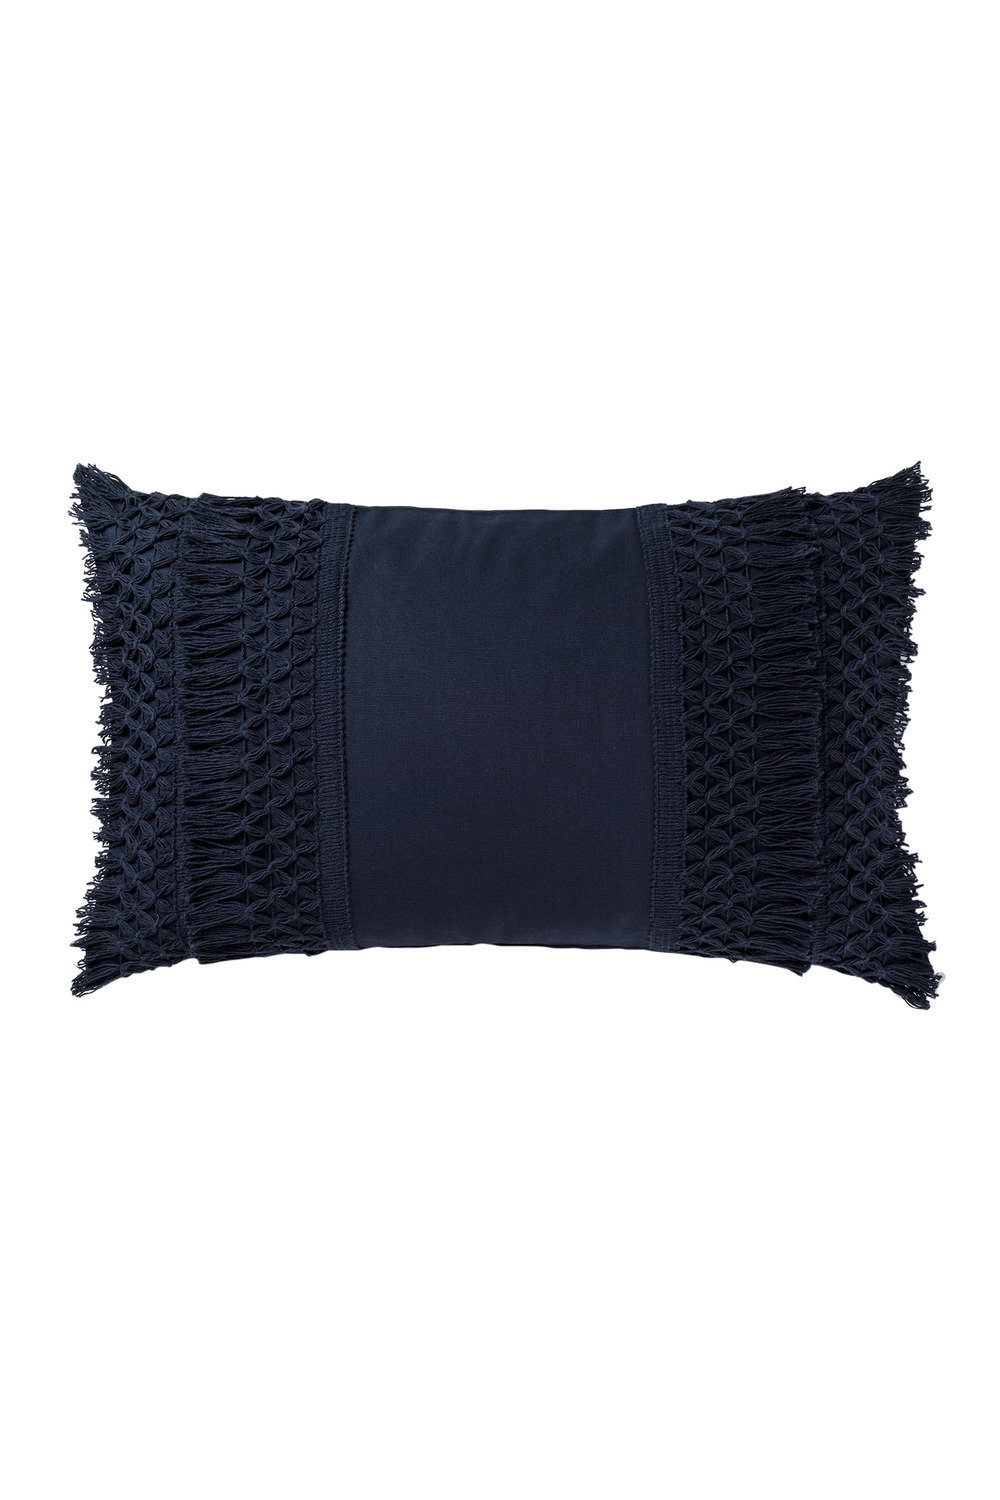 0a290011525be8 Colette Cushion Online